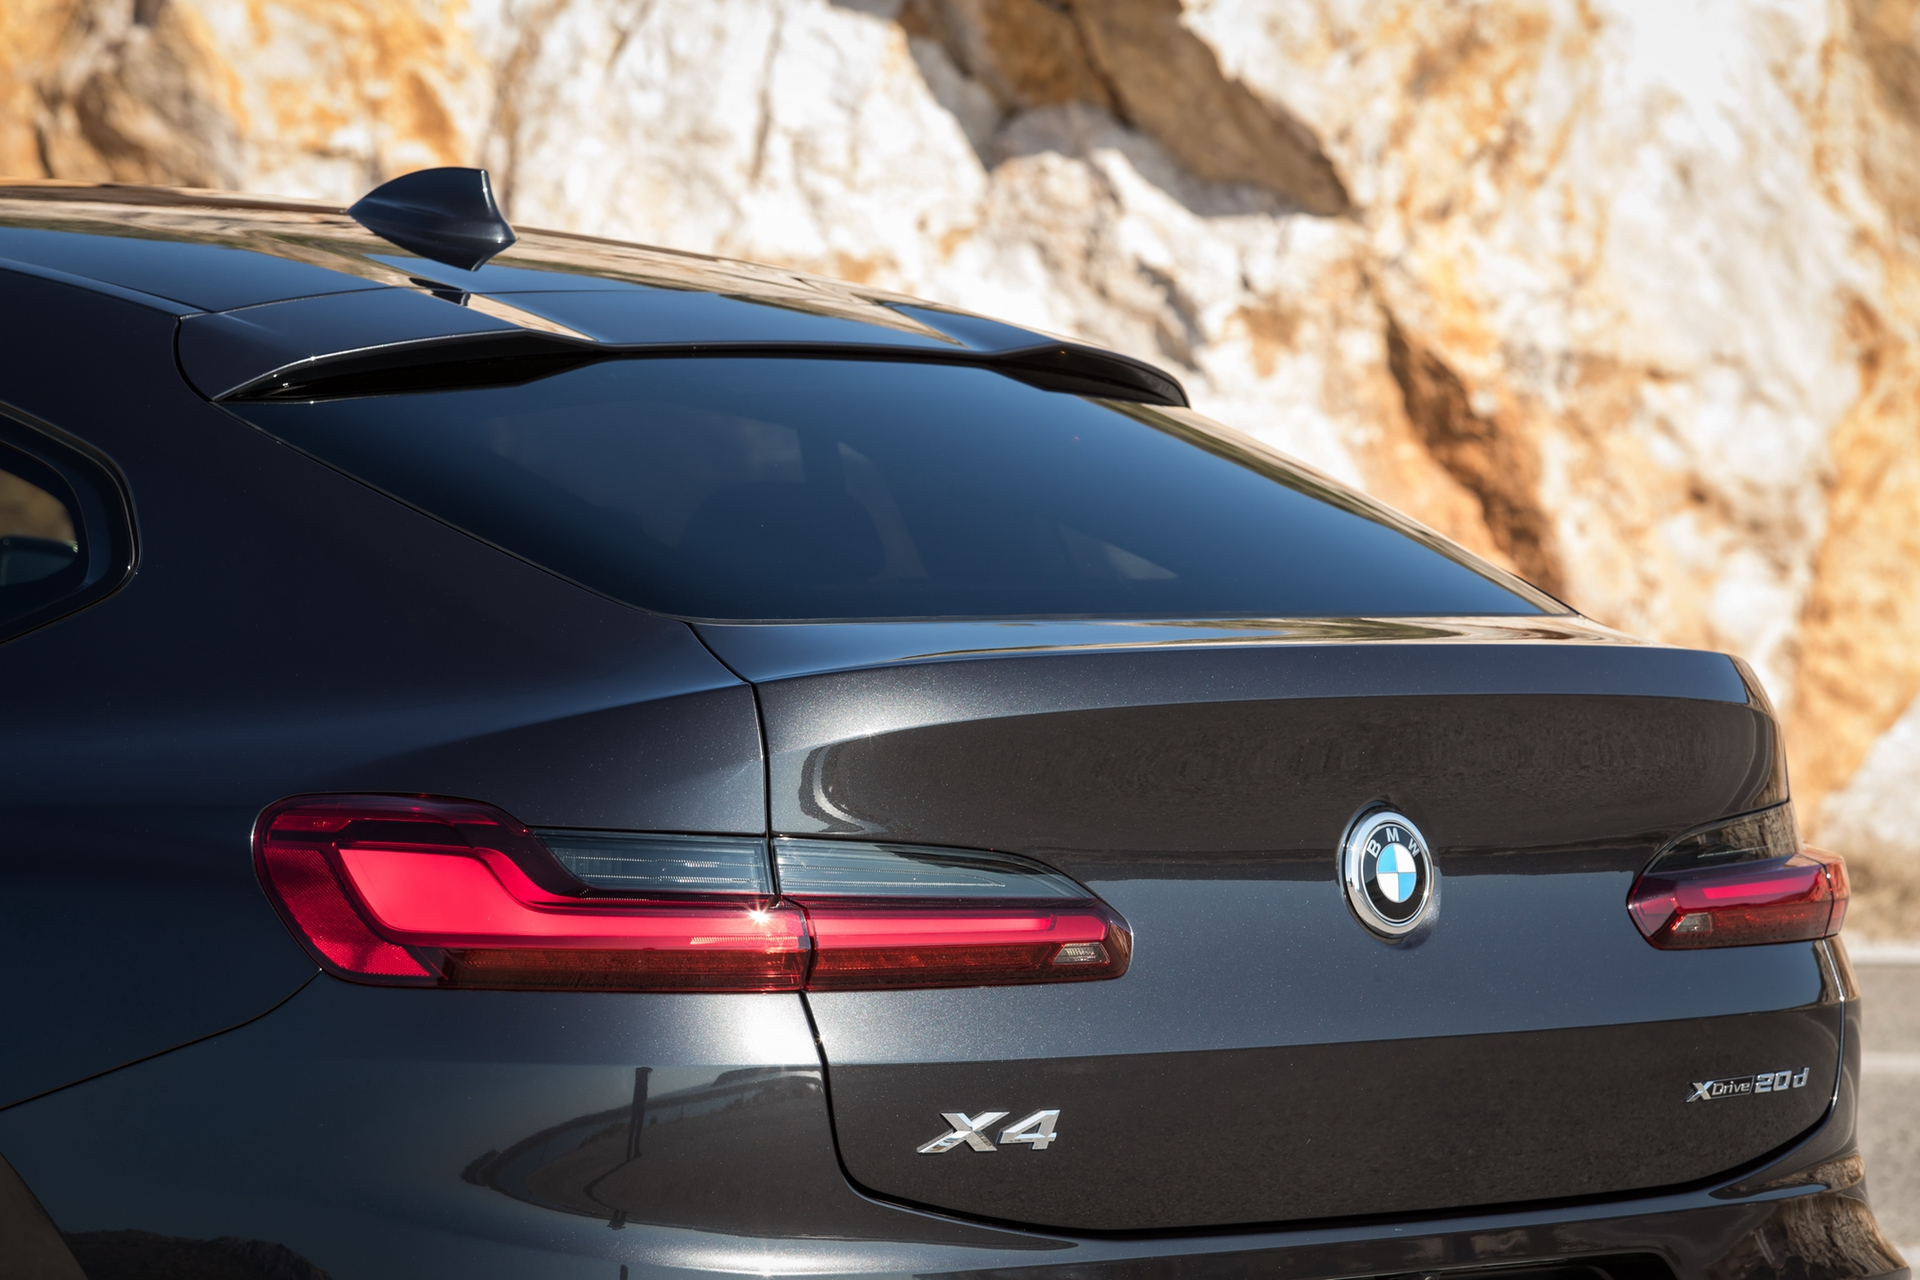 BMW_X4_greek_presskit_0122